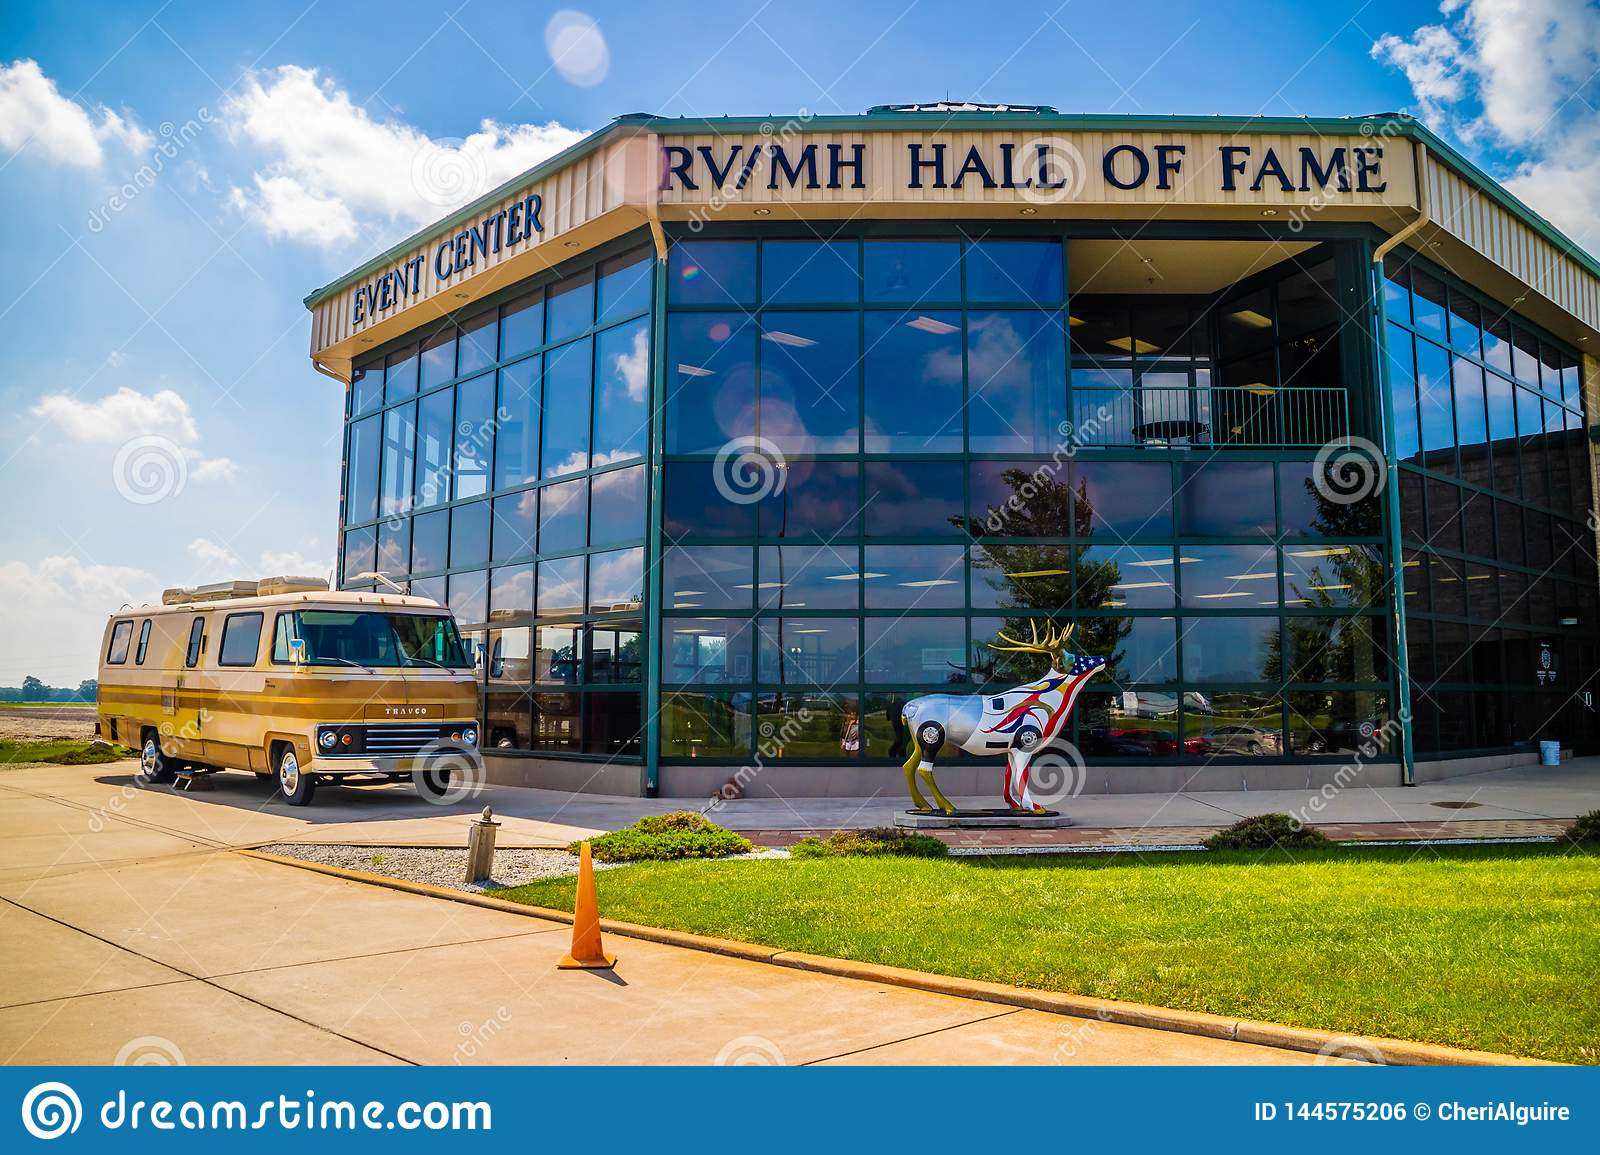 Rv Hall Of Fame >> An Entrance Road Going To Rv Mh Hall Of Fame Museum Editorial Photo